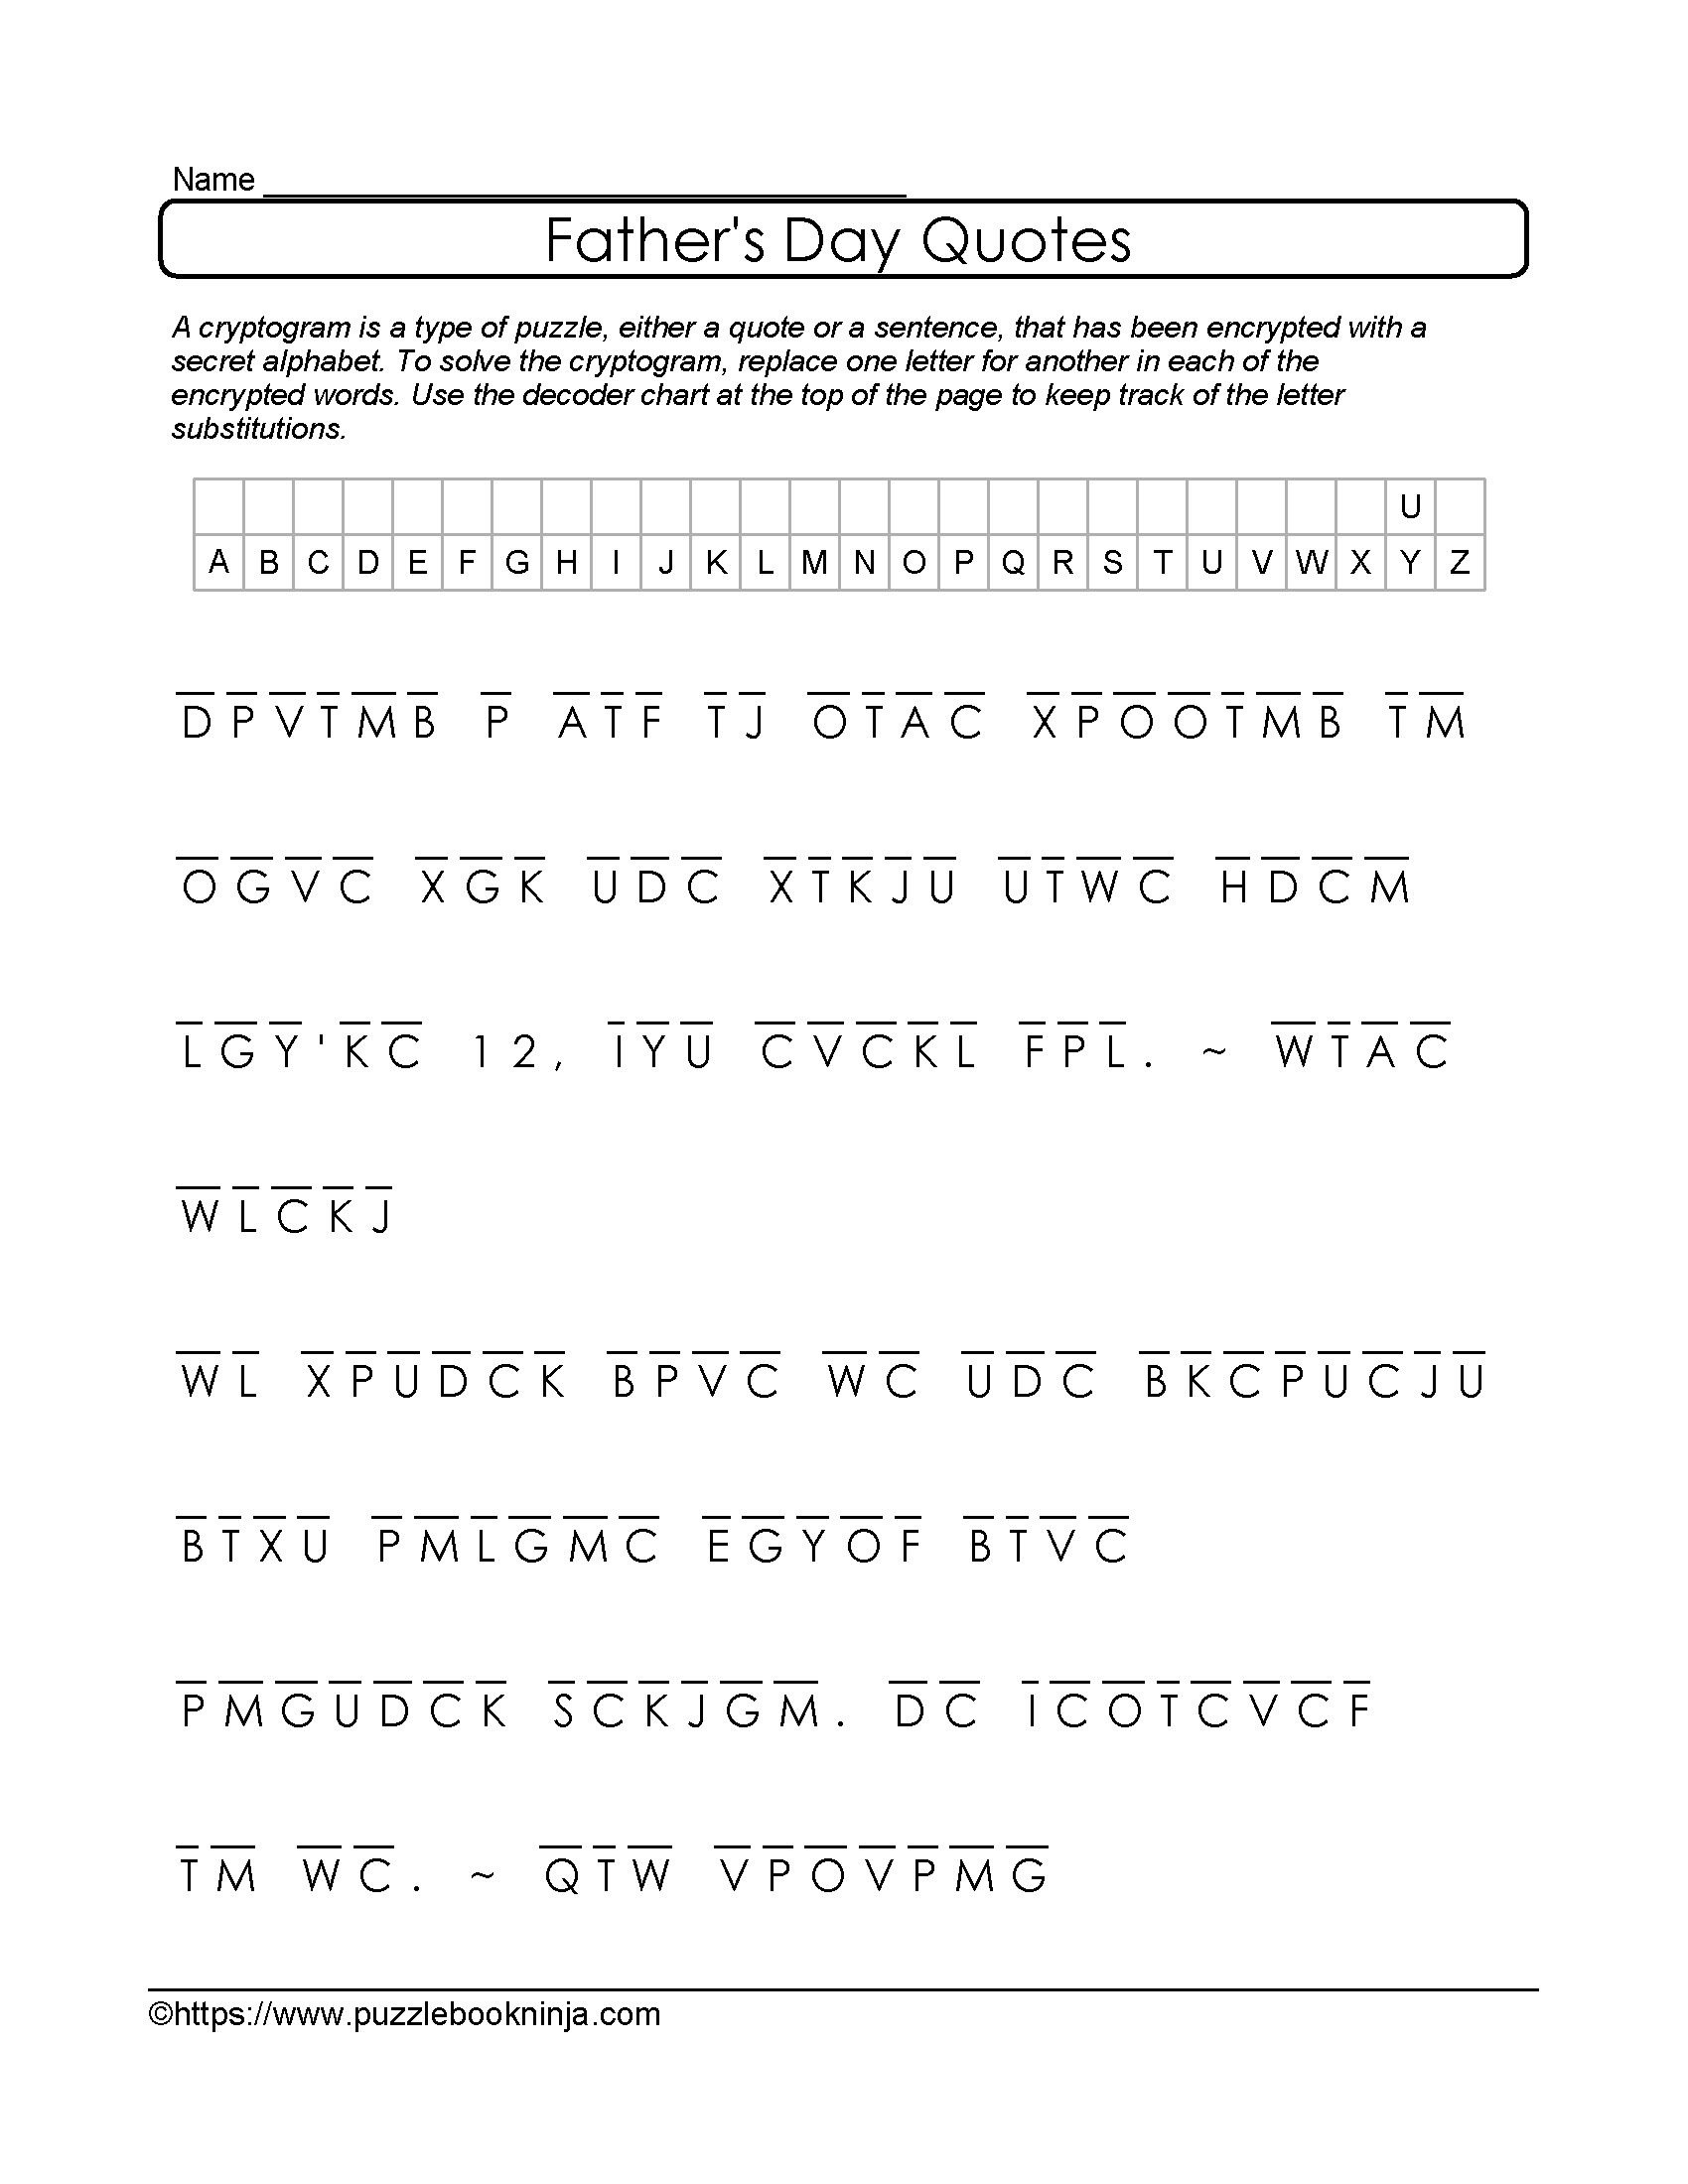 Free And Printable Father's Day Cryptogram. Quotes About Dad - Free Printable Cryptograms With Answers